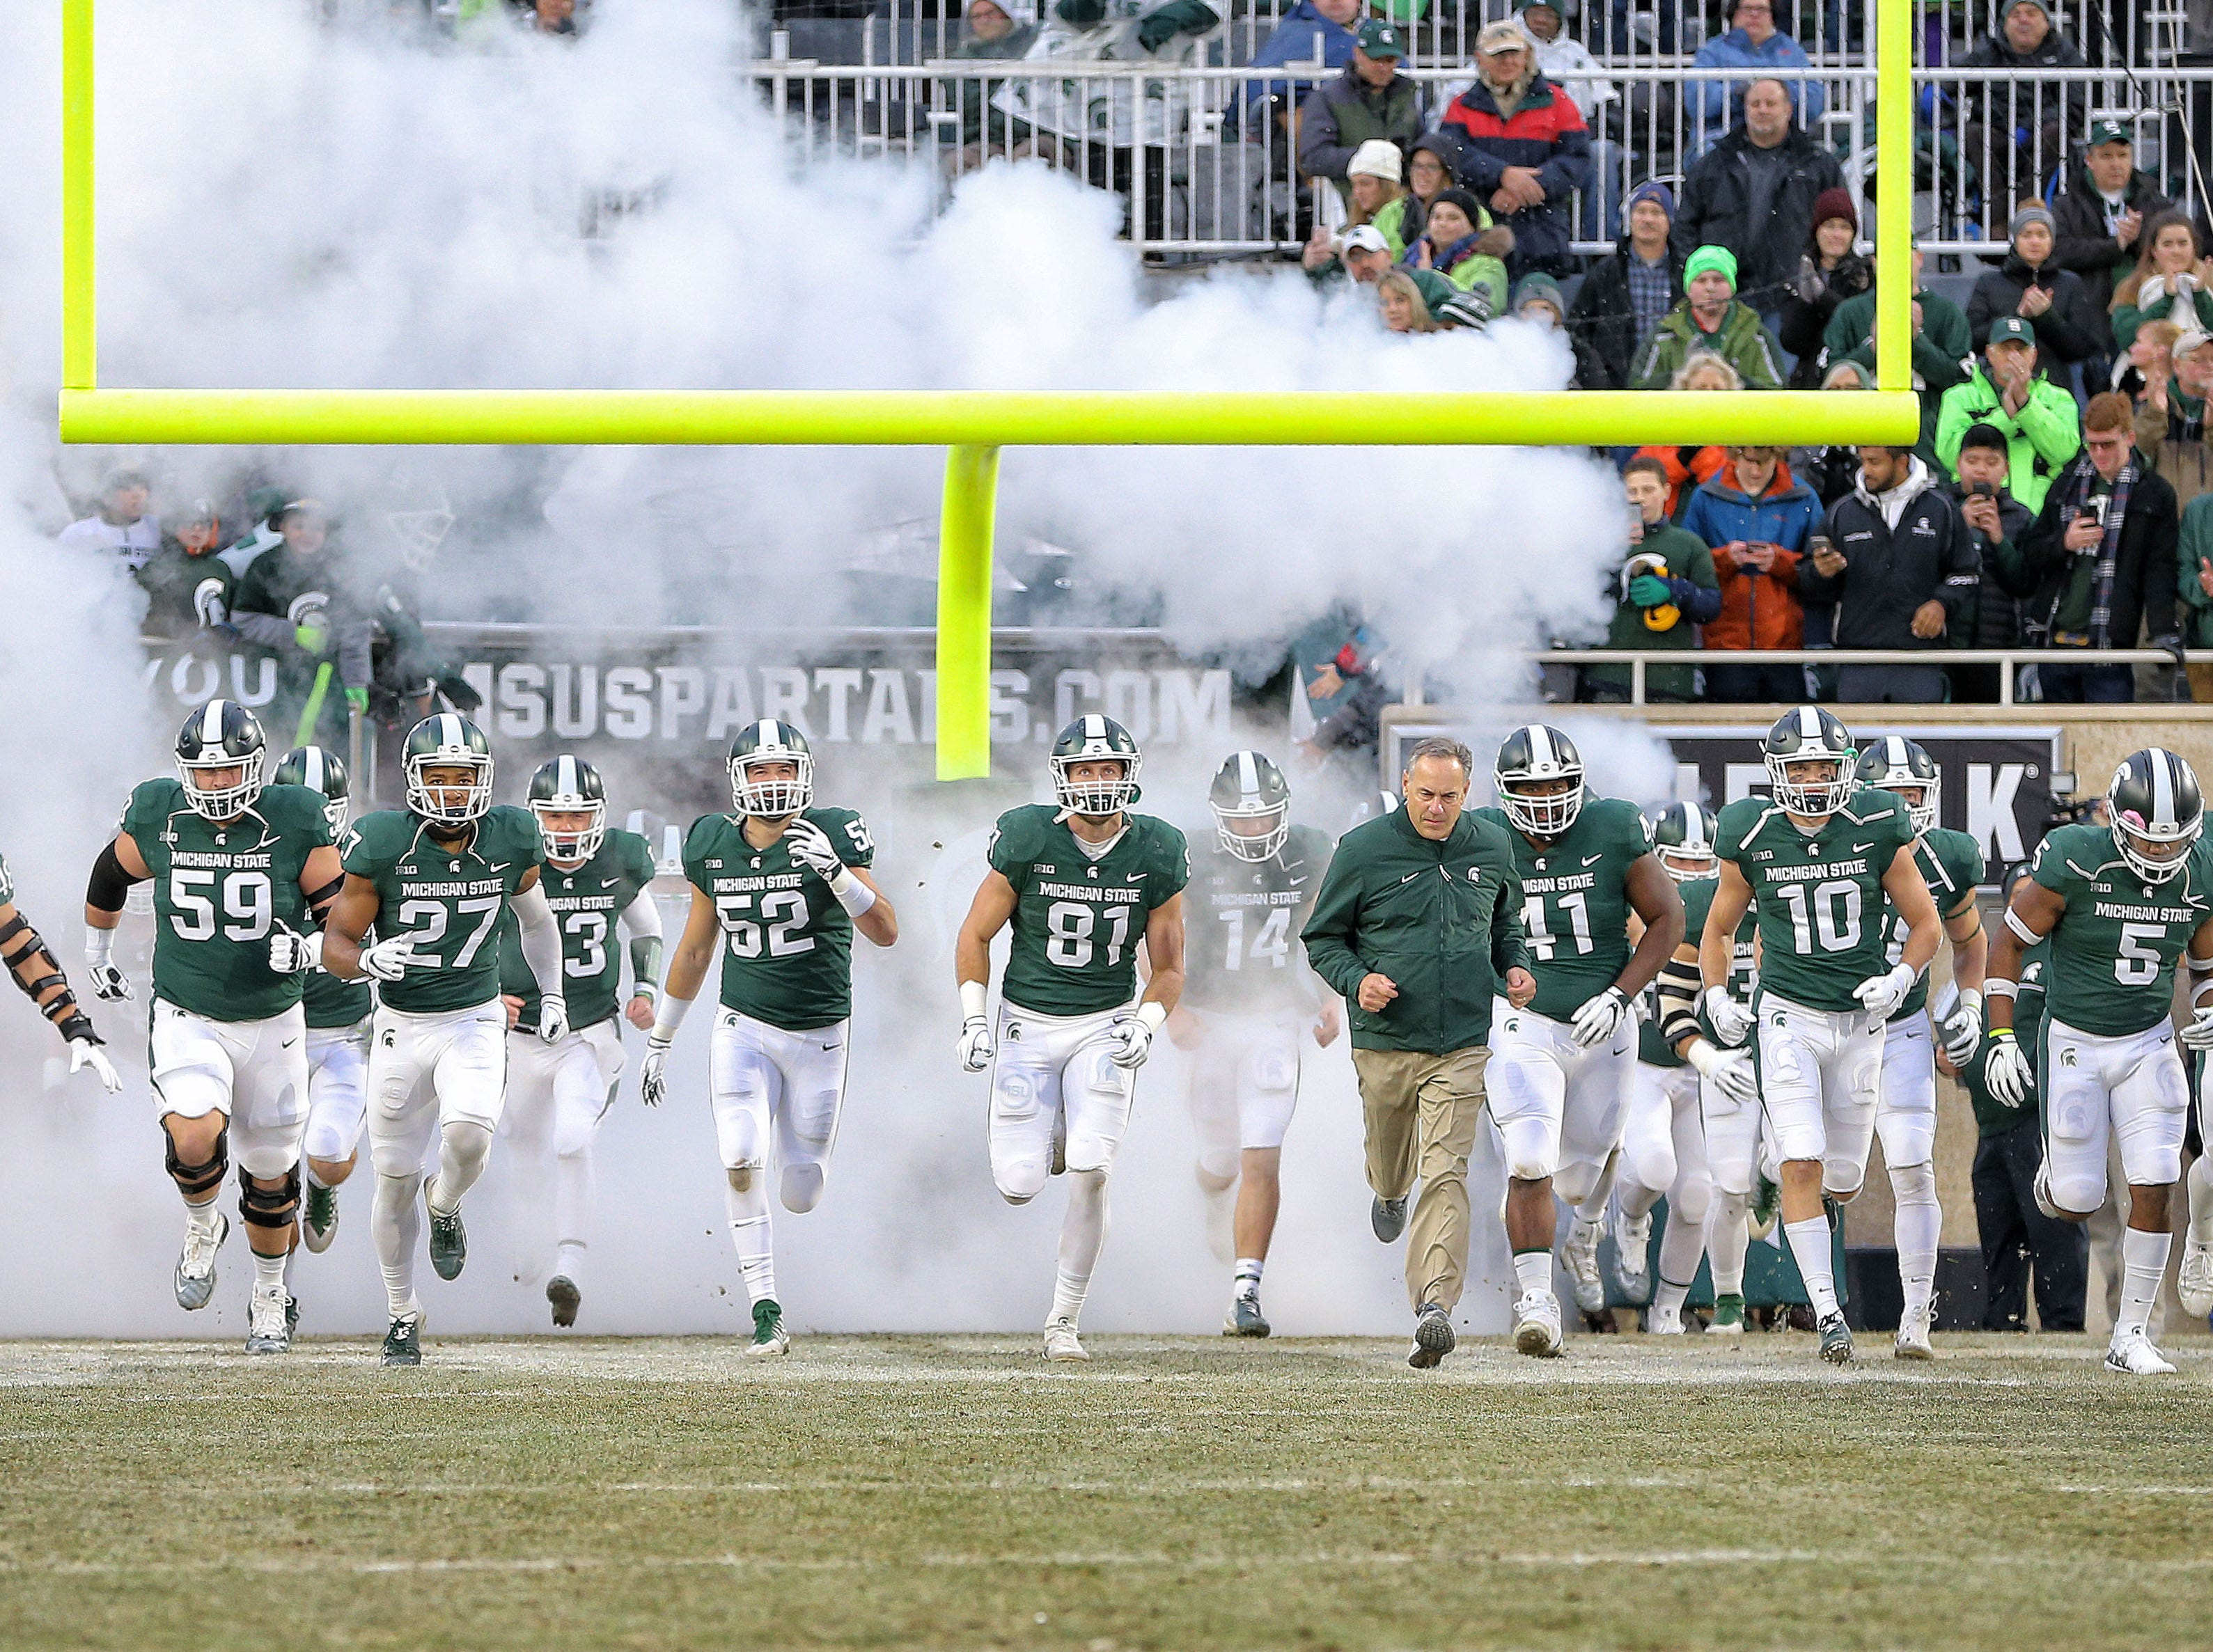 Nov 24, 2018; East Lansing, MI, USA; Michigan State Spartans run unto the field prior to  a game against the Rutgers Scarlet Knights at Spartan Stadium. Mandatory Credit: Mike Carter-USA TODAY Sports